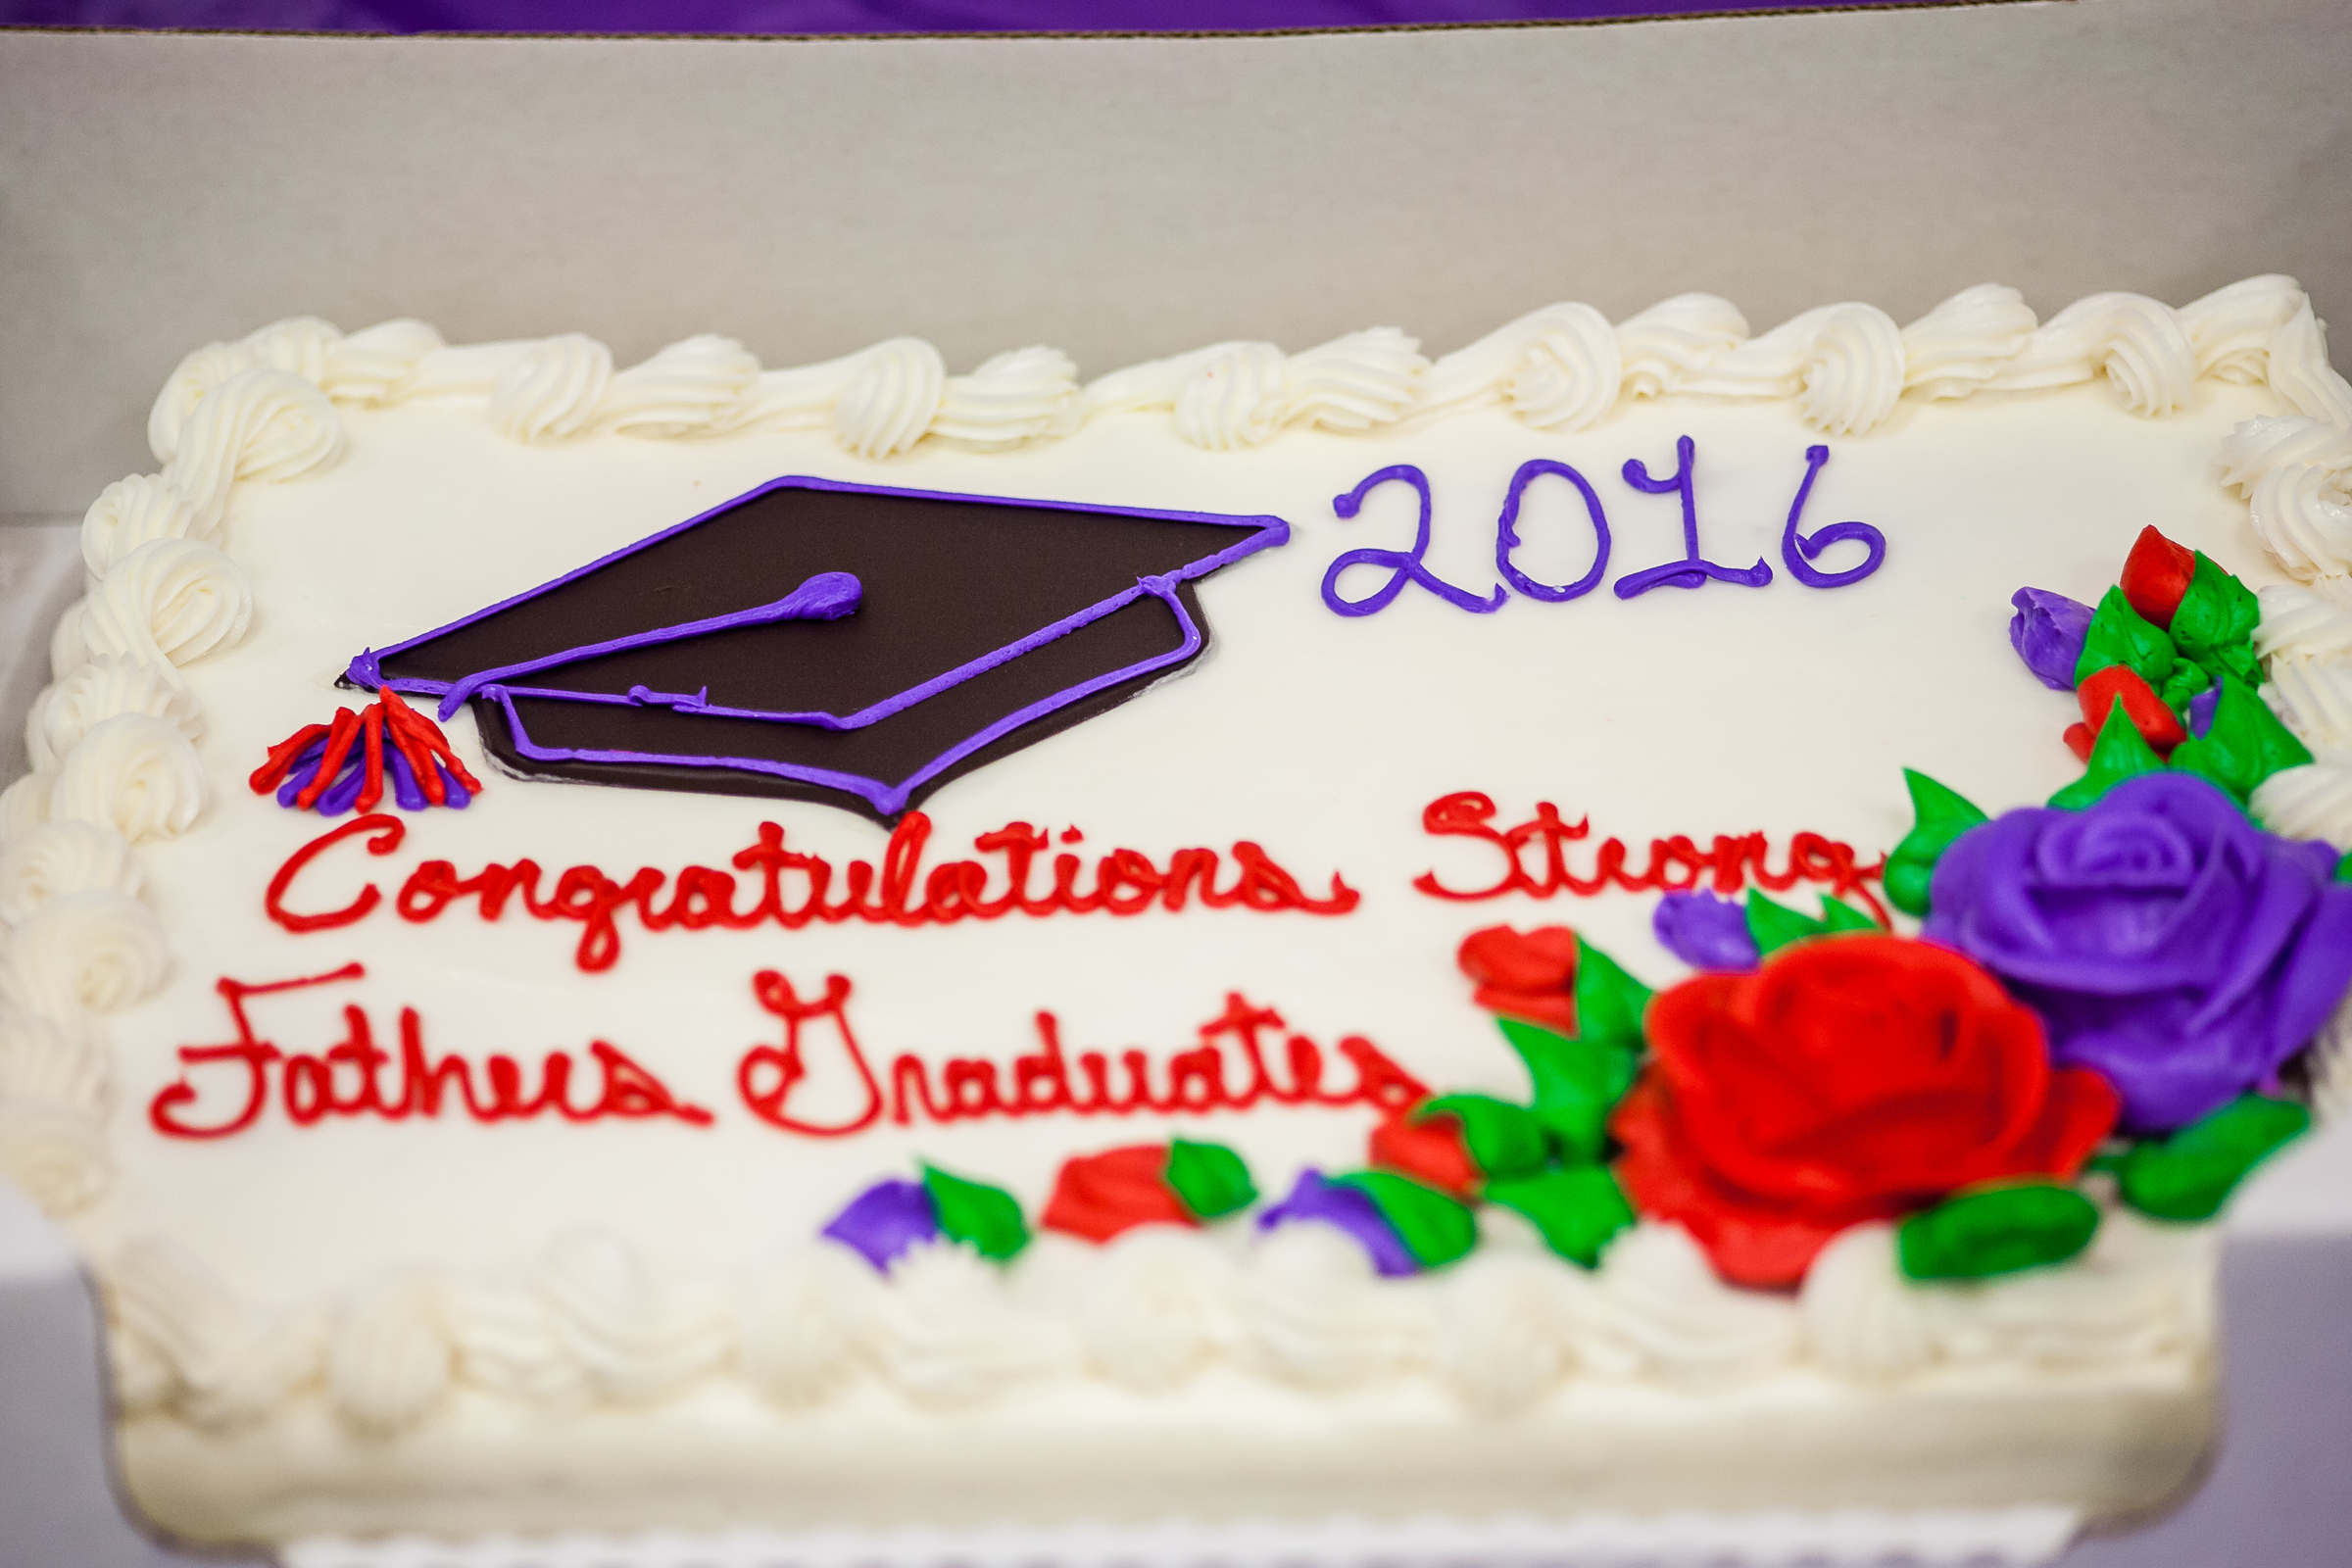 Congratulations, Group 13 Graduates!